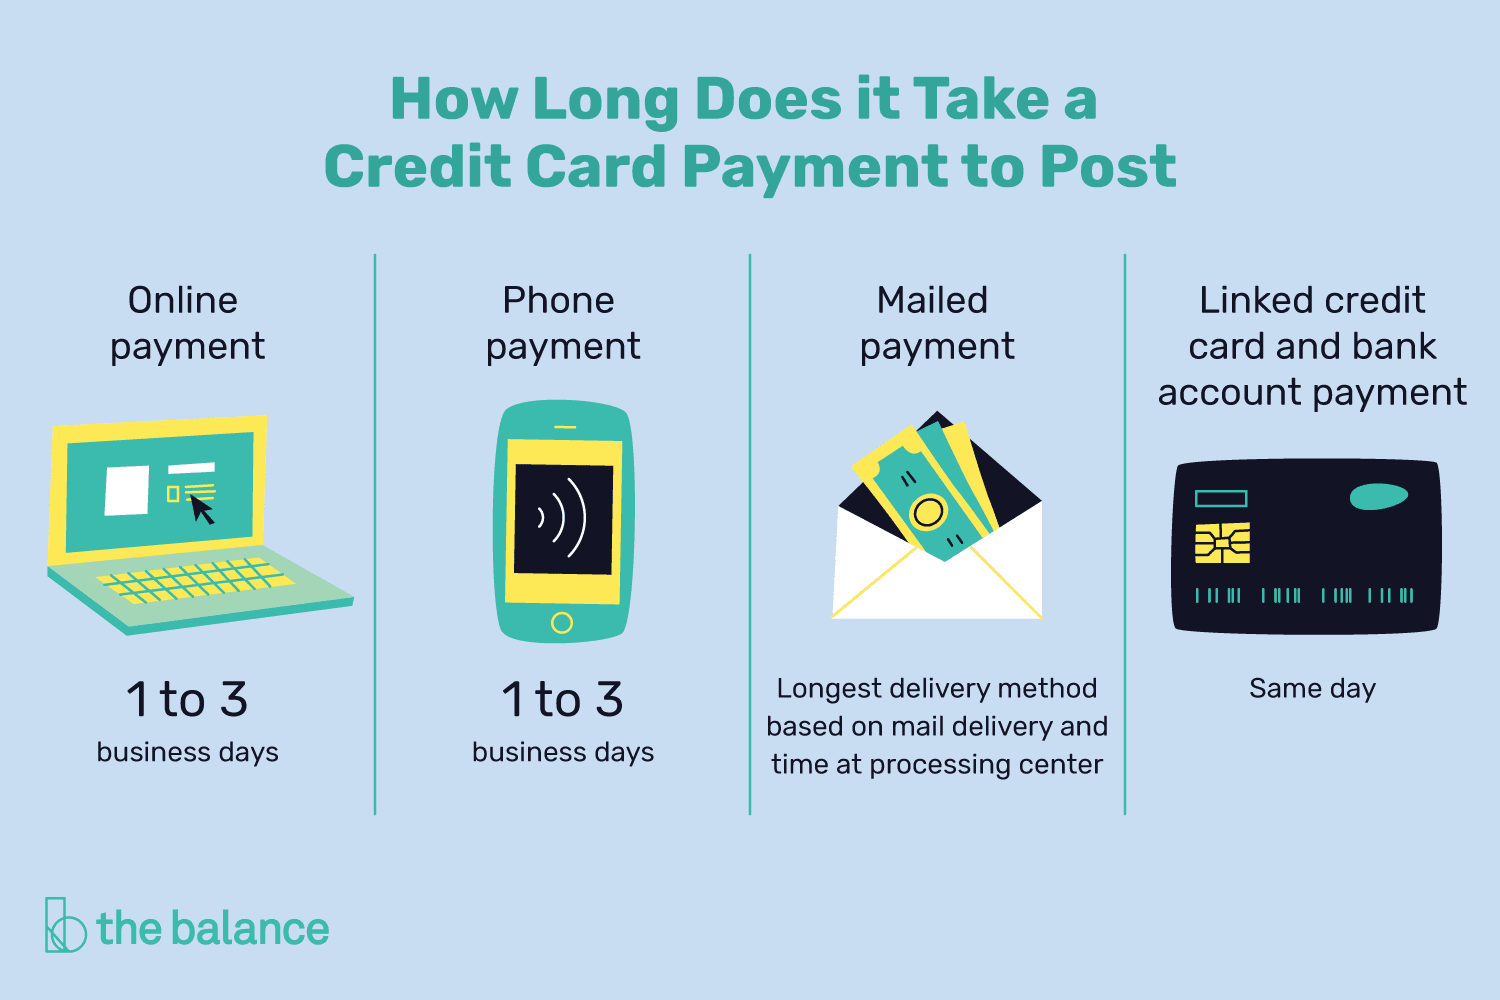 How Long Does it Take a Credit Card Payment to Post